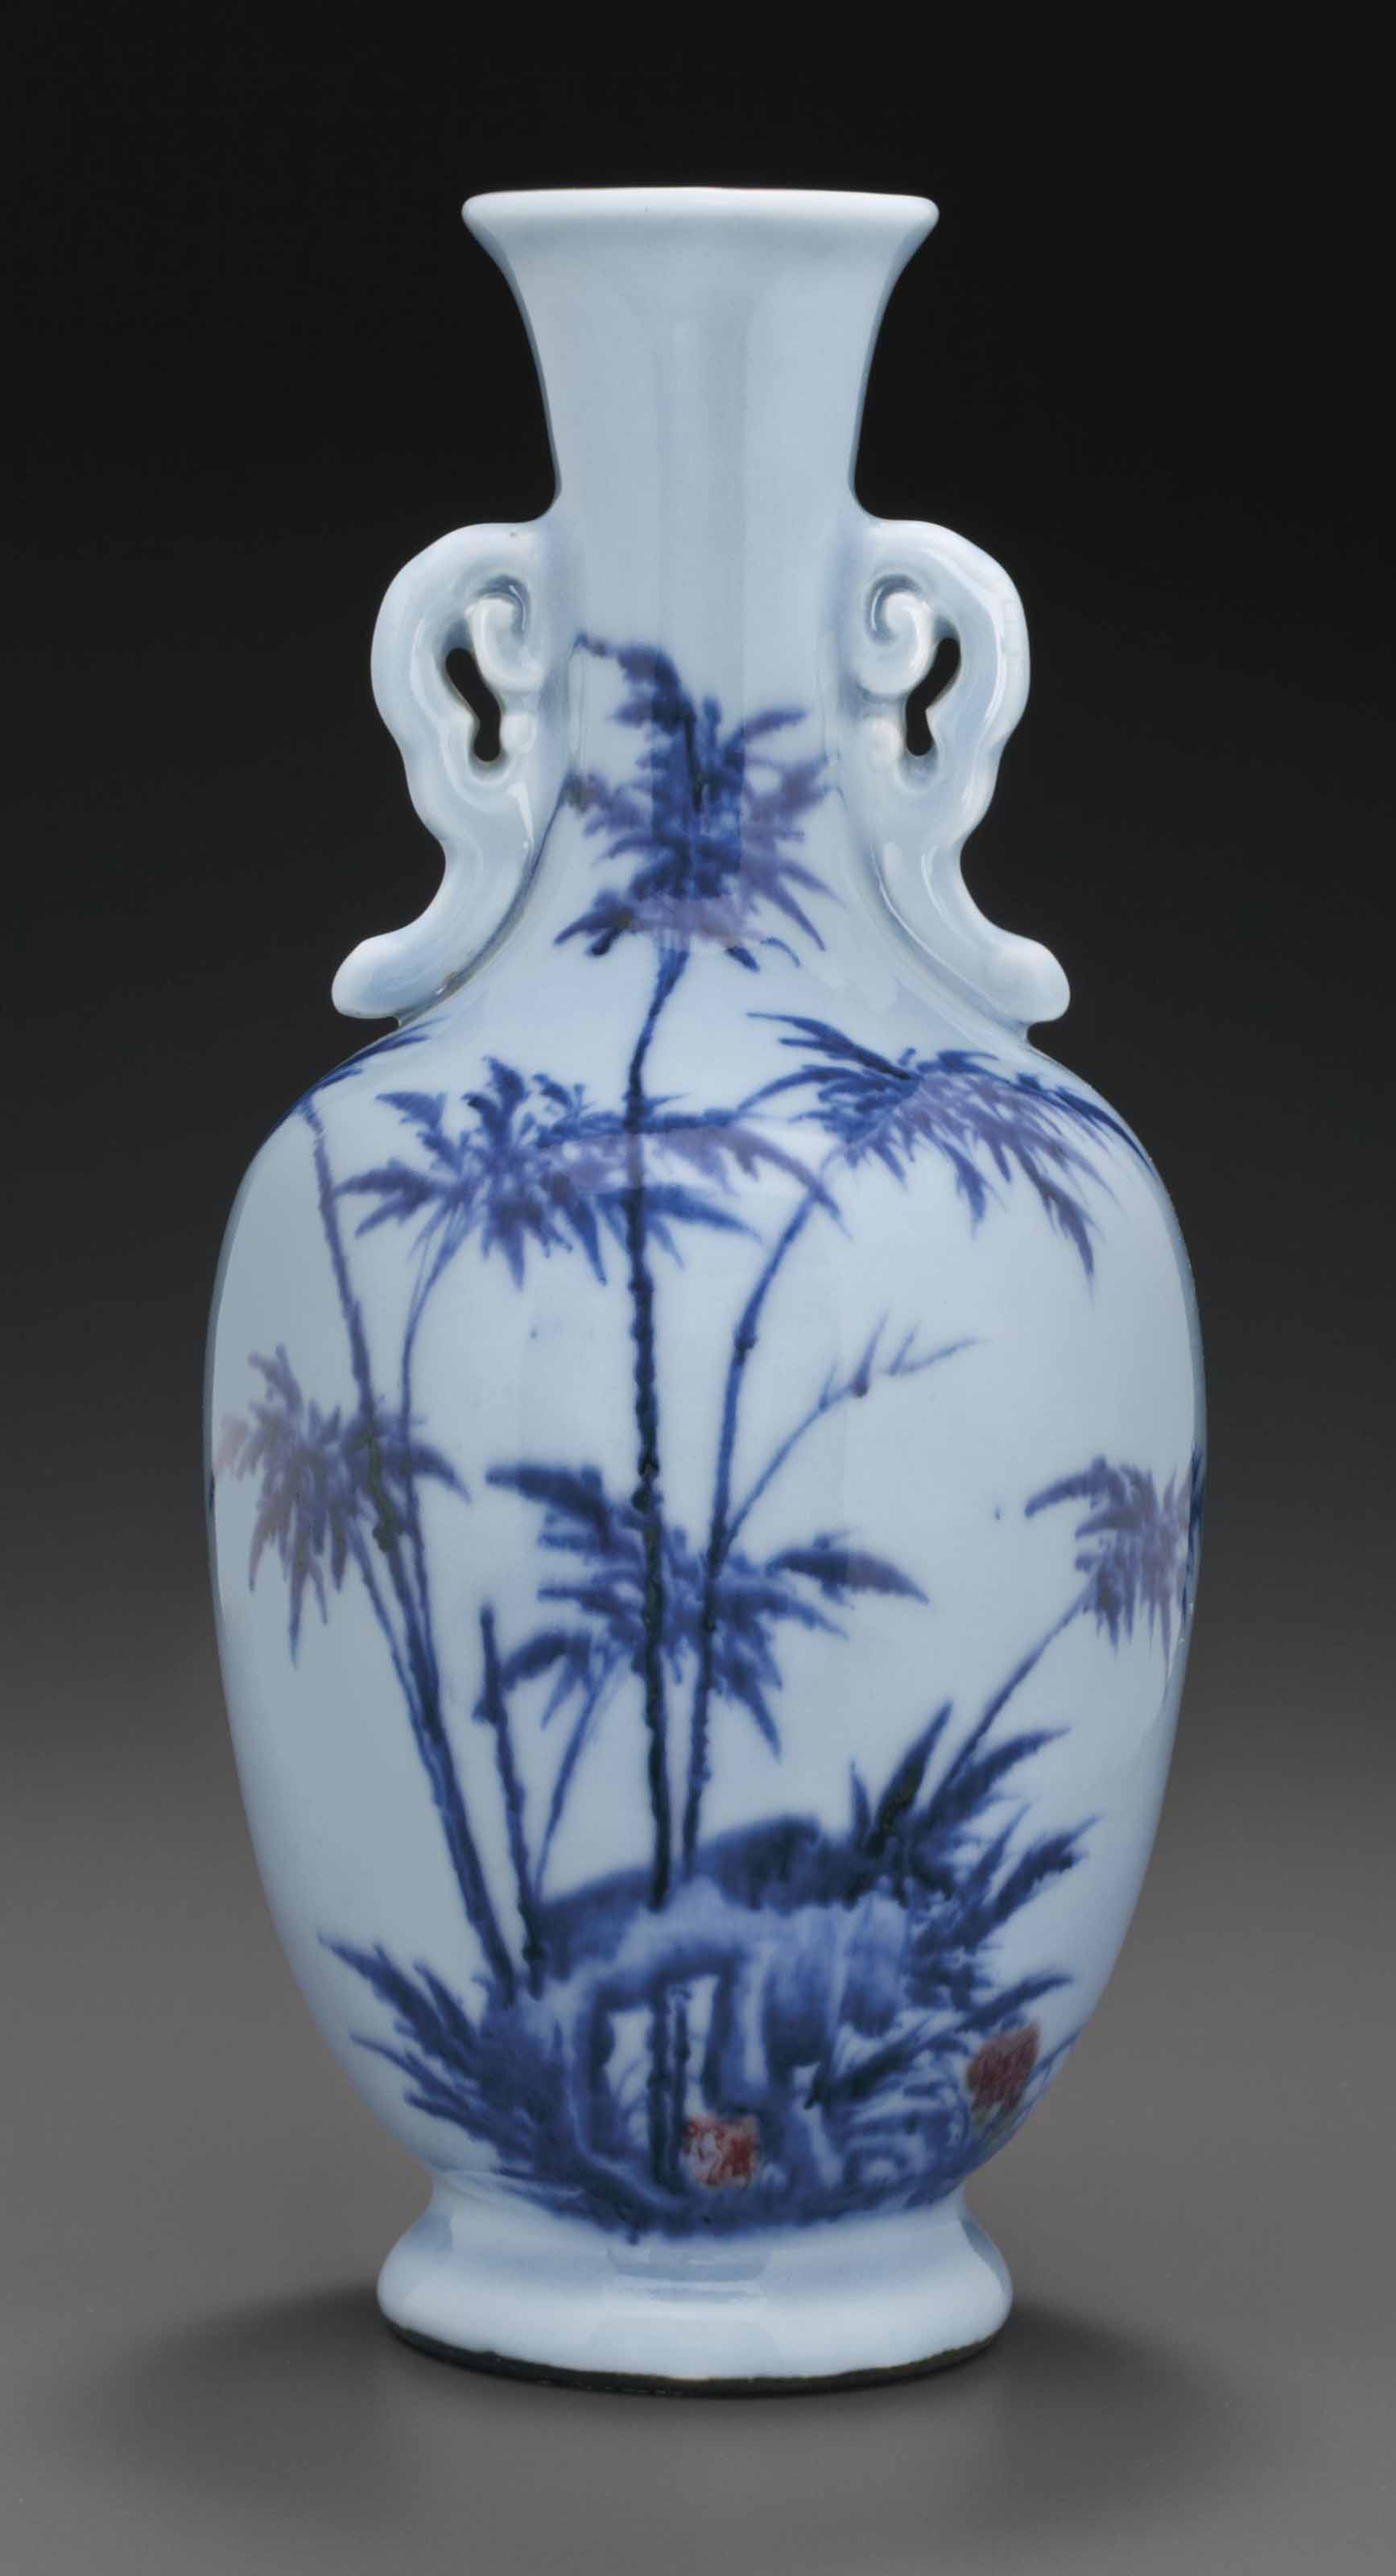 AN UNDERGLAZE BLUE AND COPPER-RED-DECORATED PALE BLUE VASE